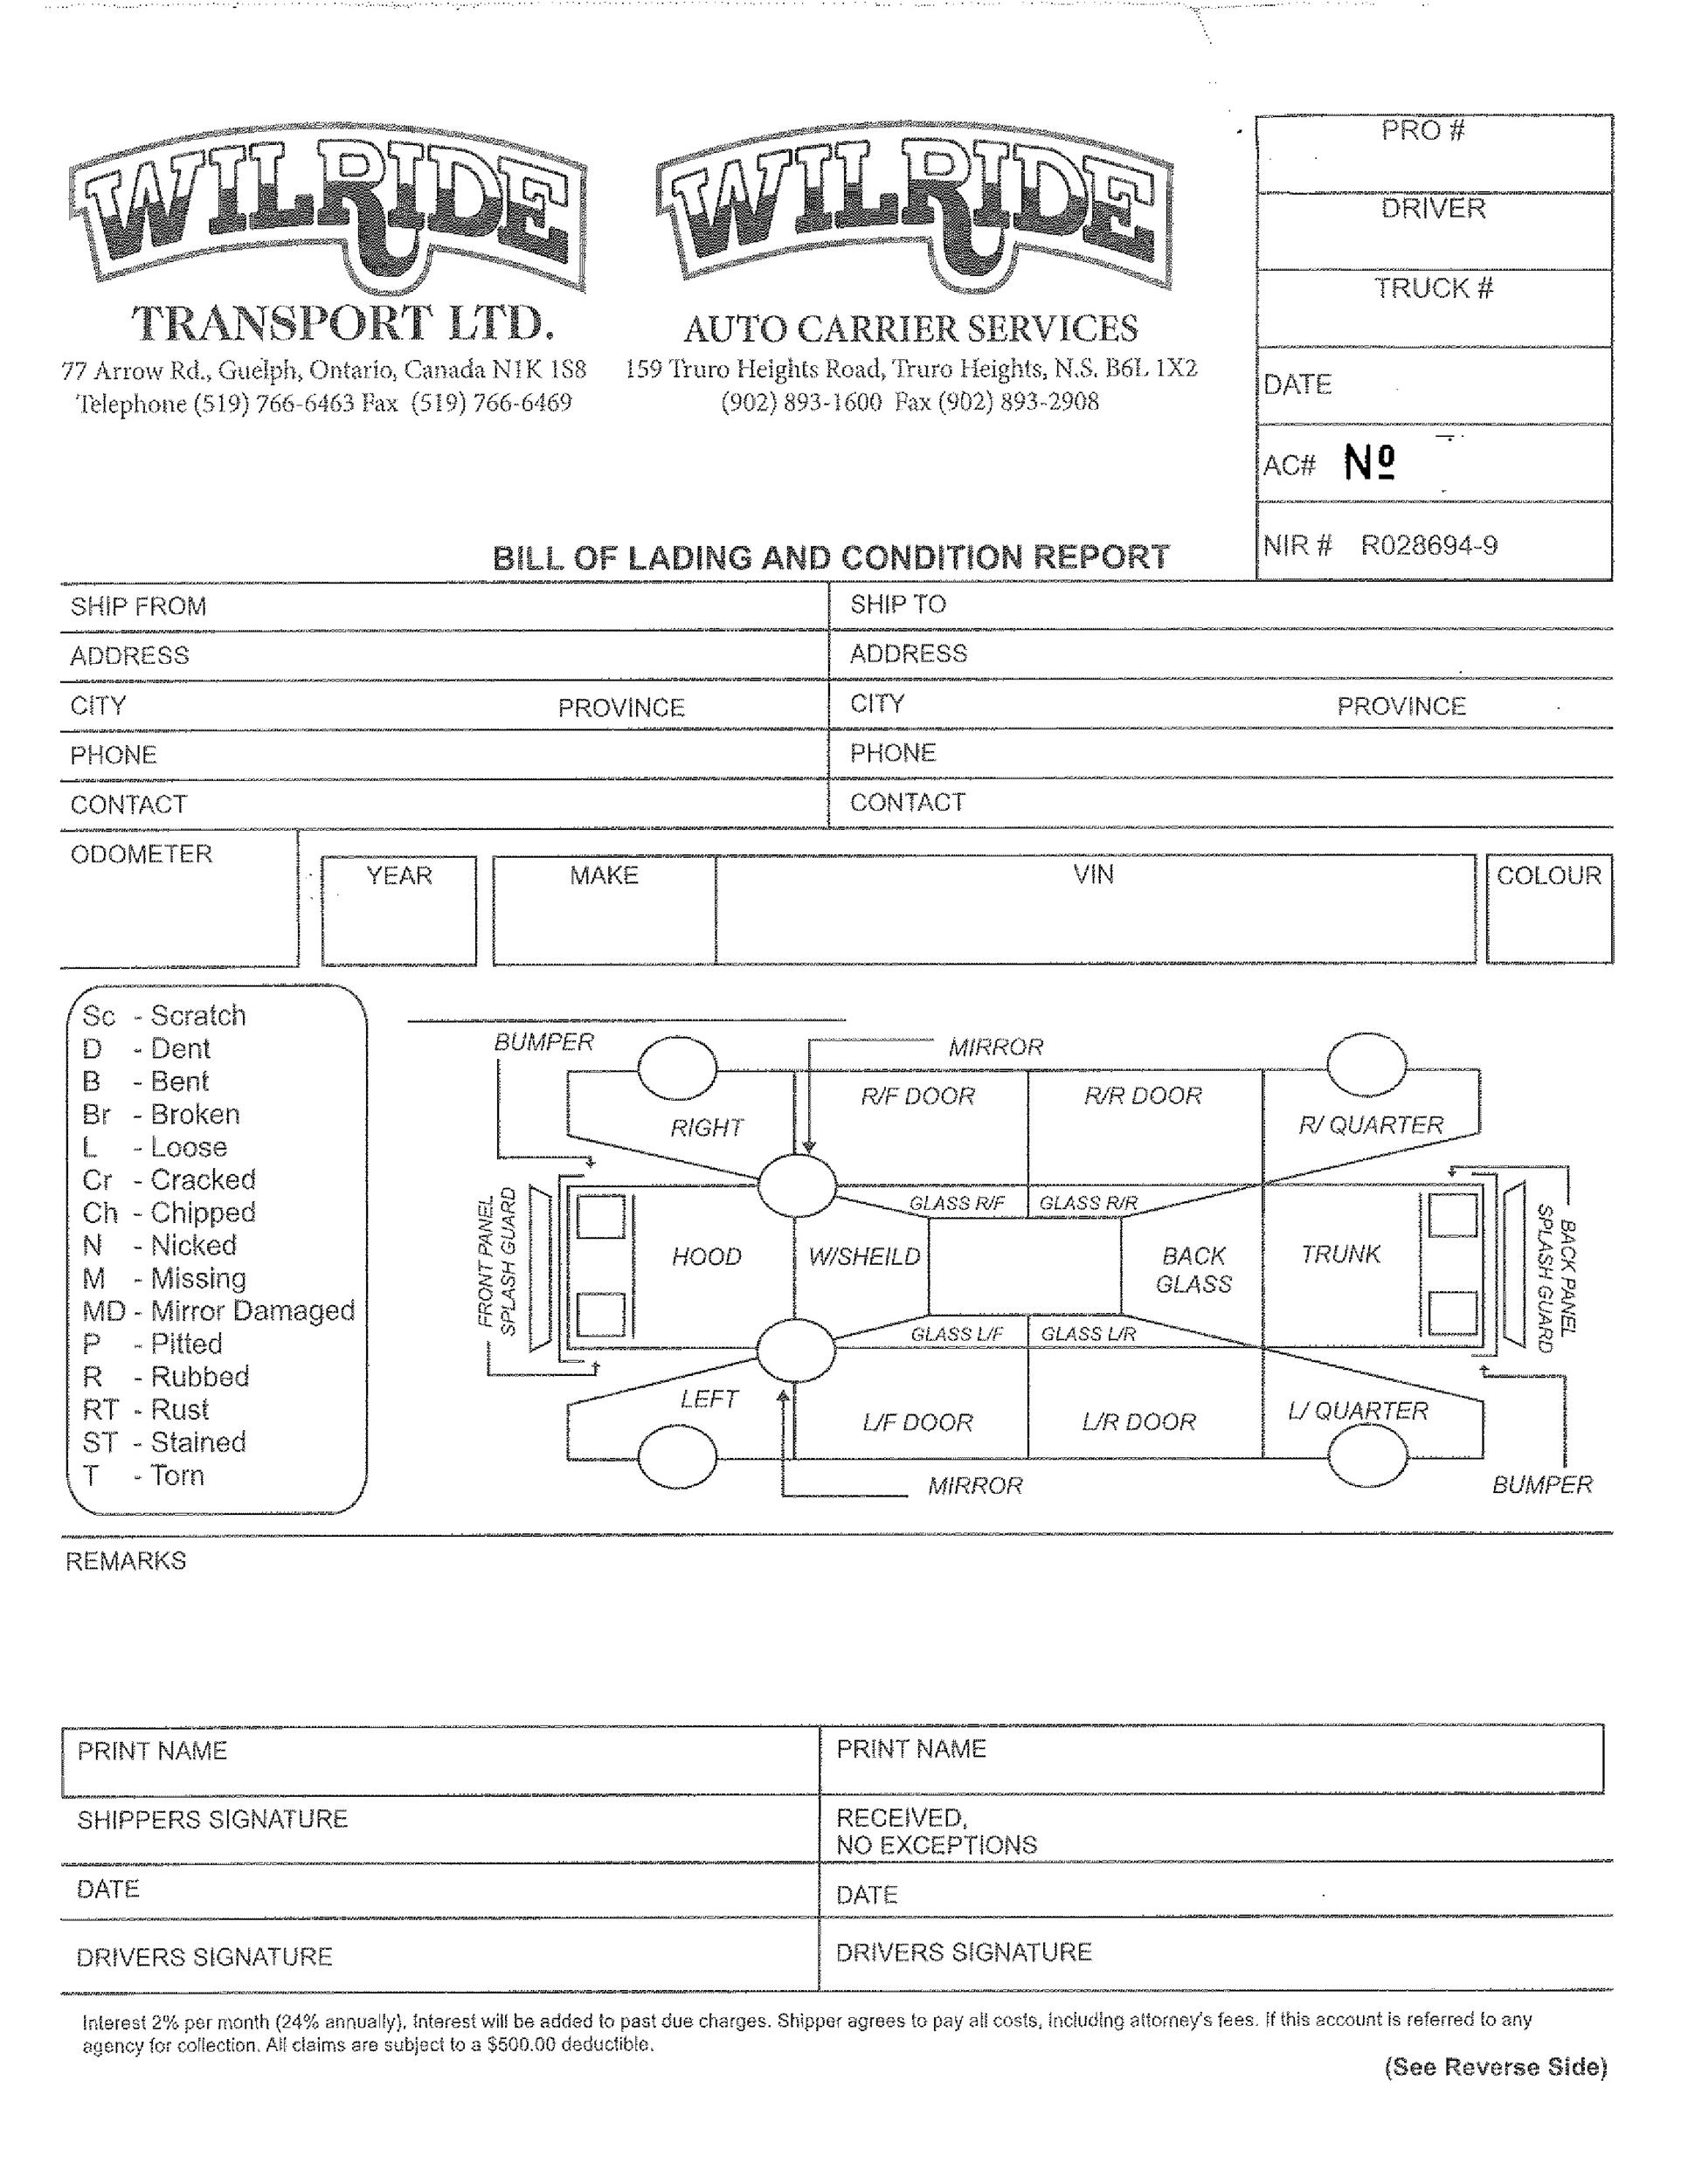 Bill of lading terms and conditions template choice image for Bill of lading terms and conditions template